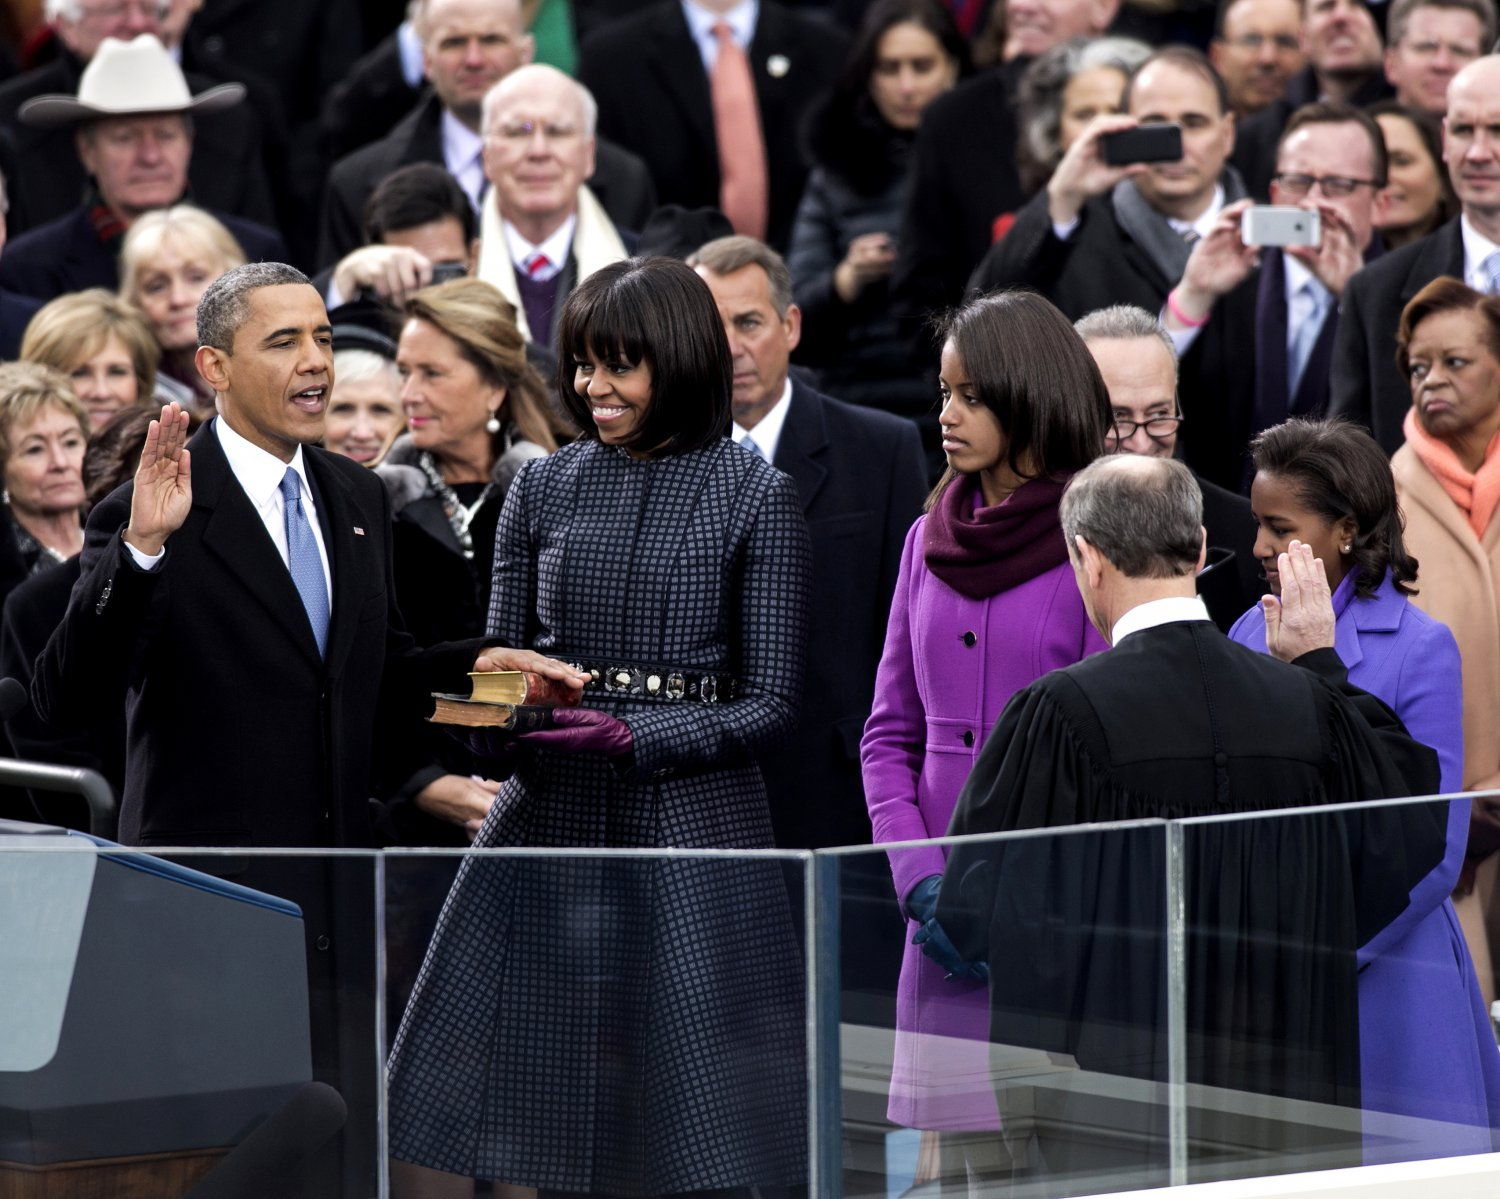 BARACK OBAMA SWORN-IN FOR HIS SECOND TERM AS PRESIDENT - 8X10 PHOTO (DD-101)